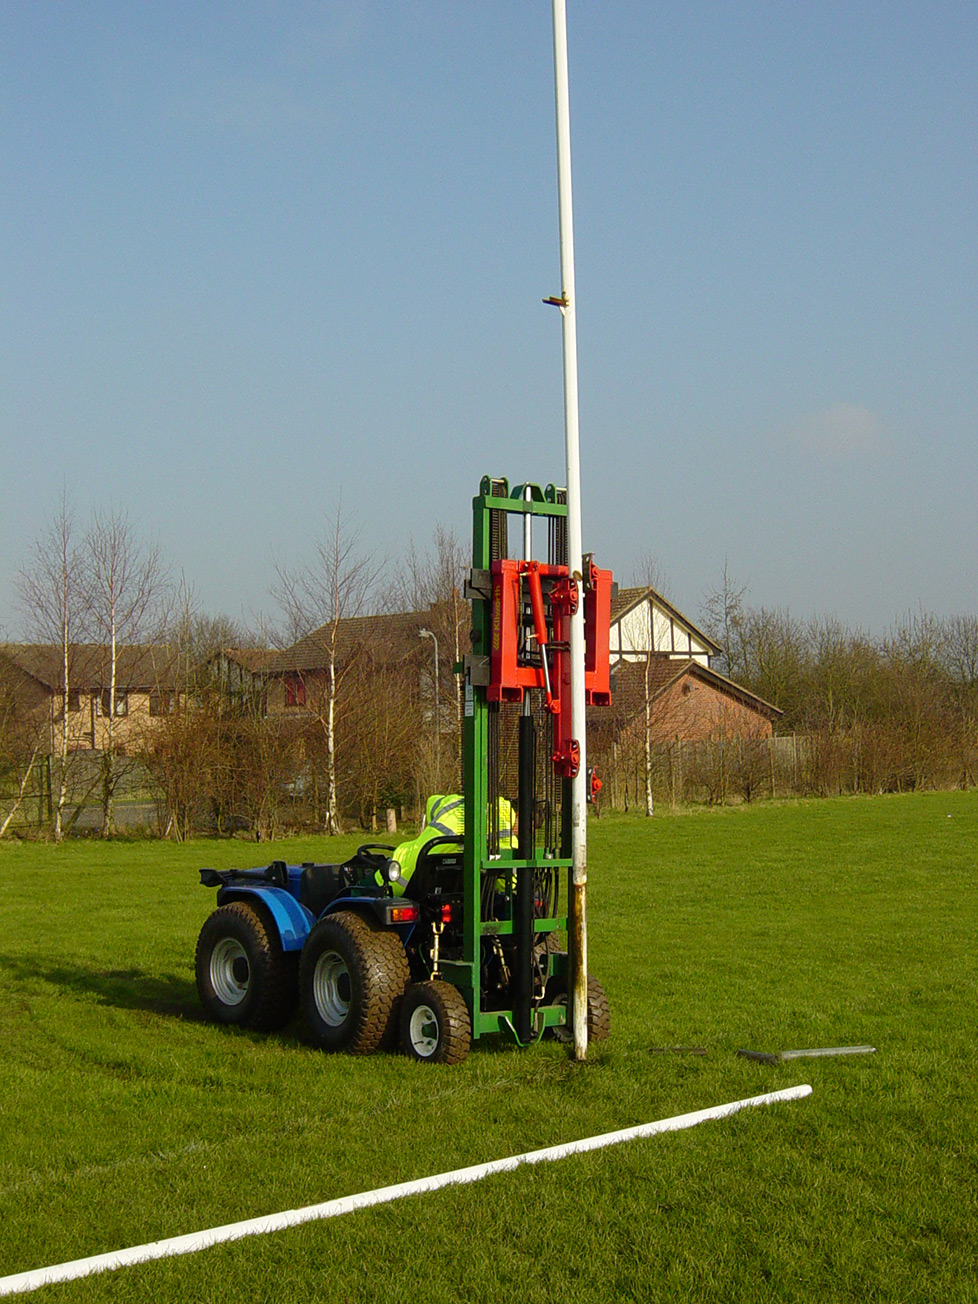 Sfk Hydraulic Forklifts And Goal Post Lifter Kilworth